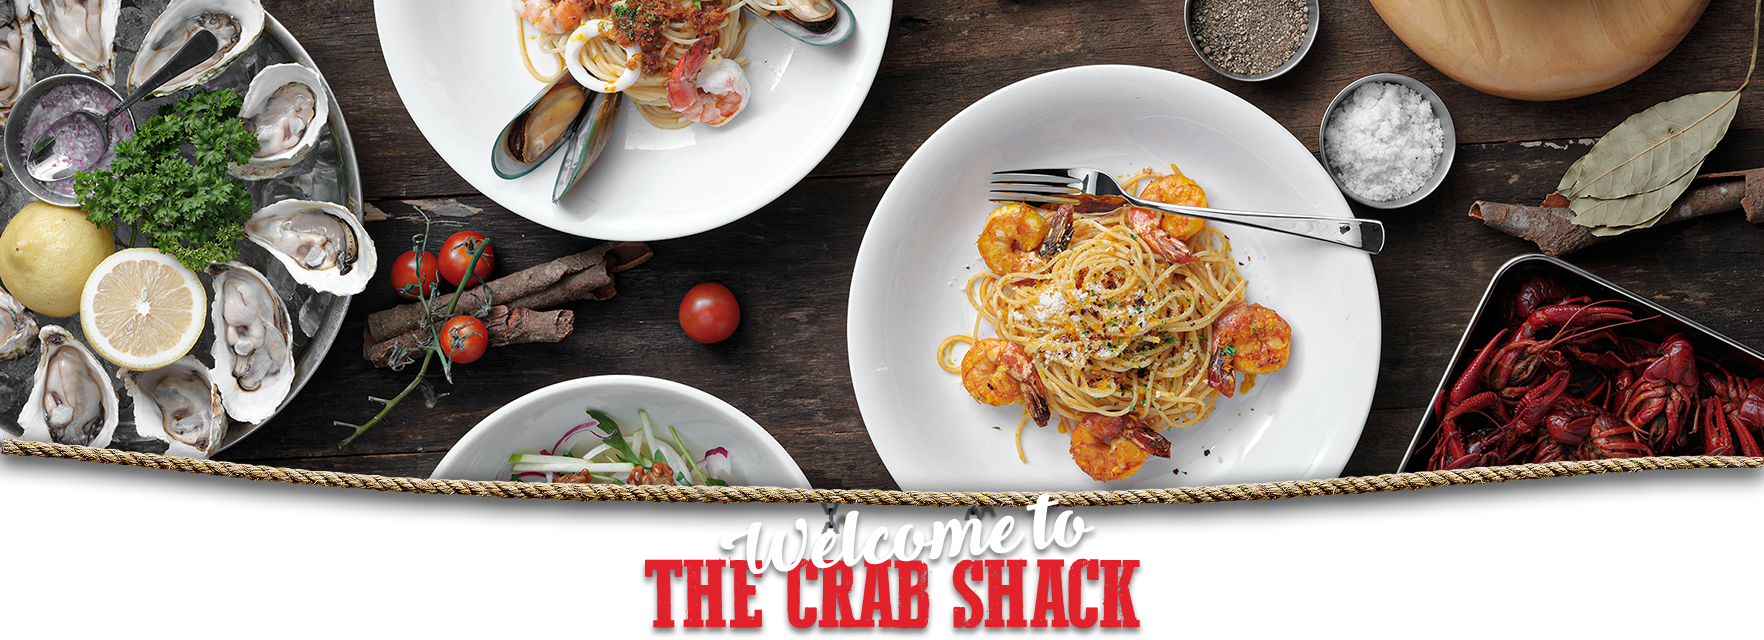 the-crab-shack-ho-chi-minh-city